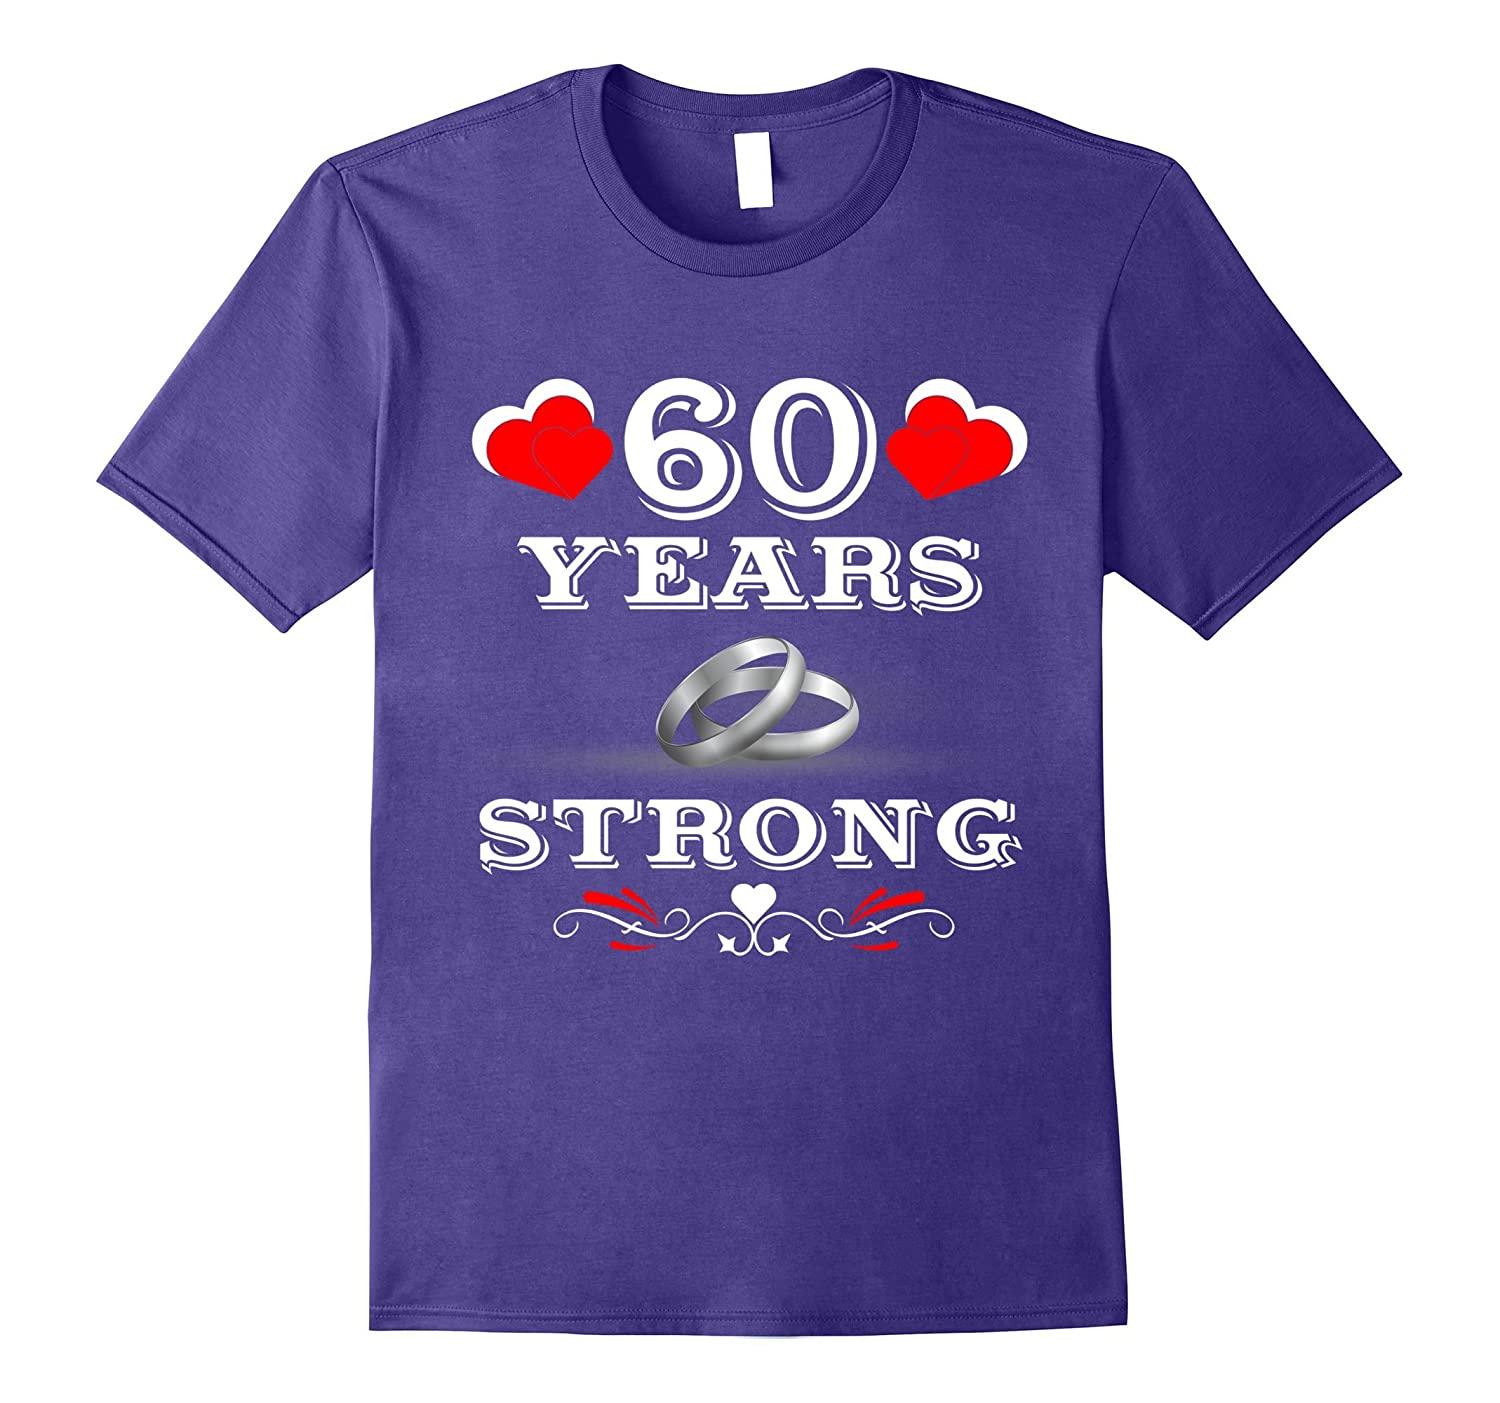 60th Wedding Anniversary Gifts. Tee Shirts For Couples.-FL